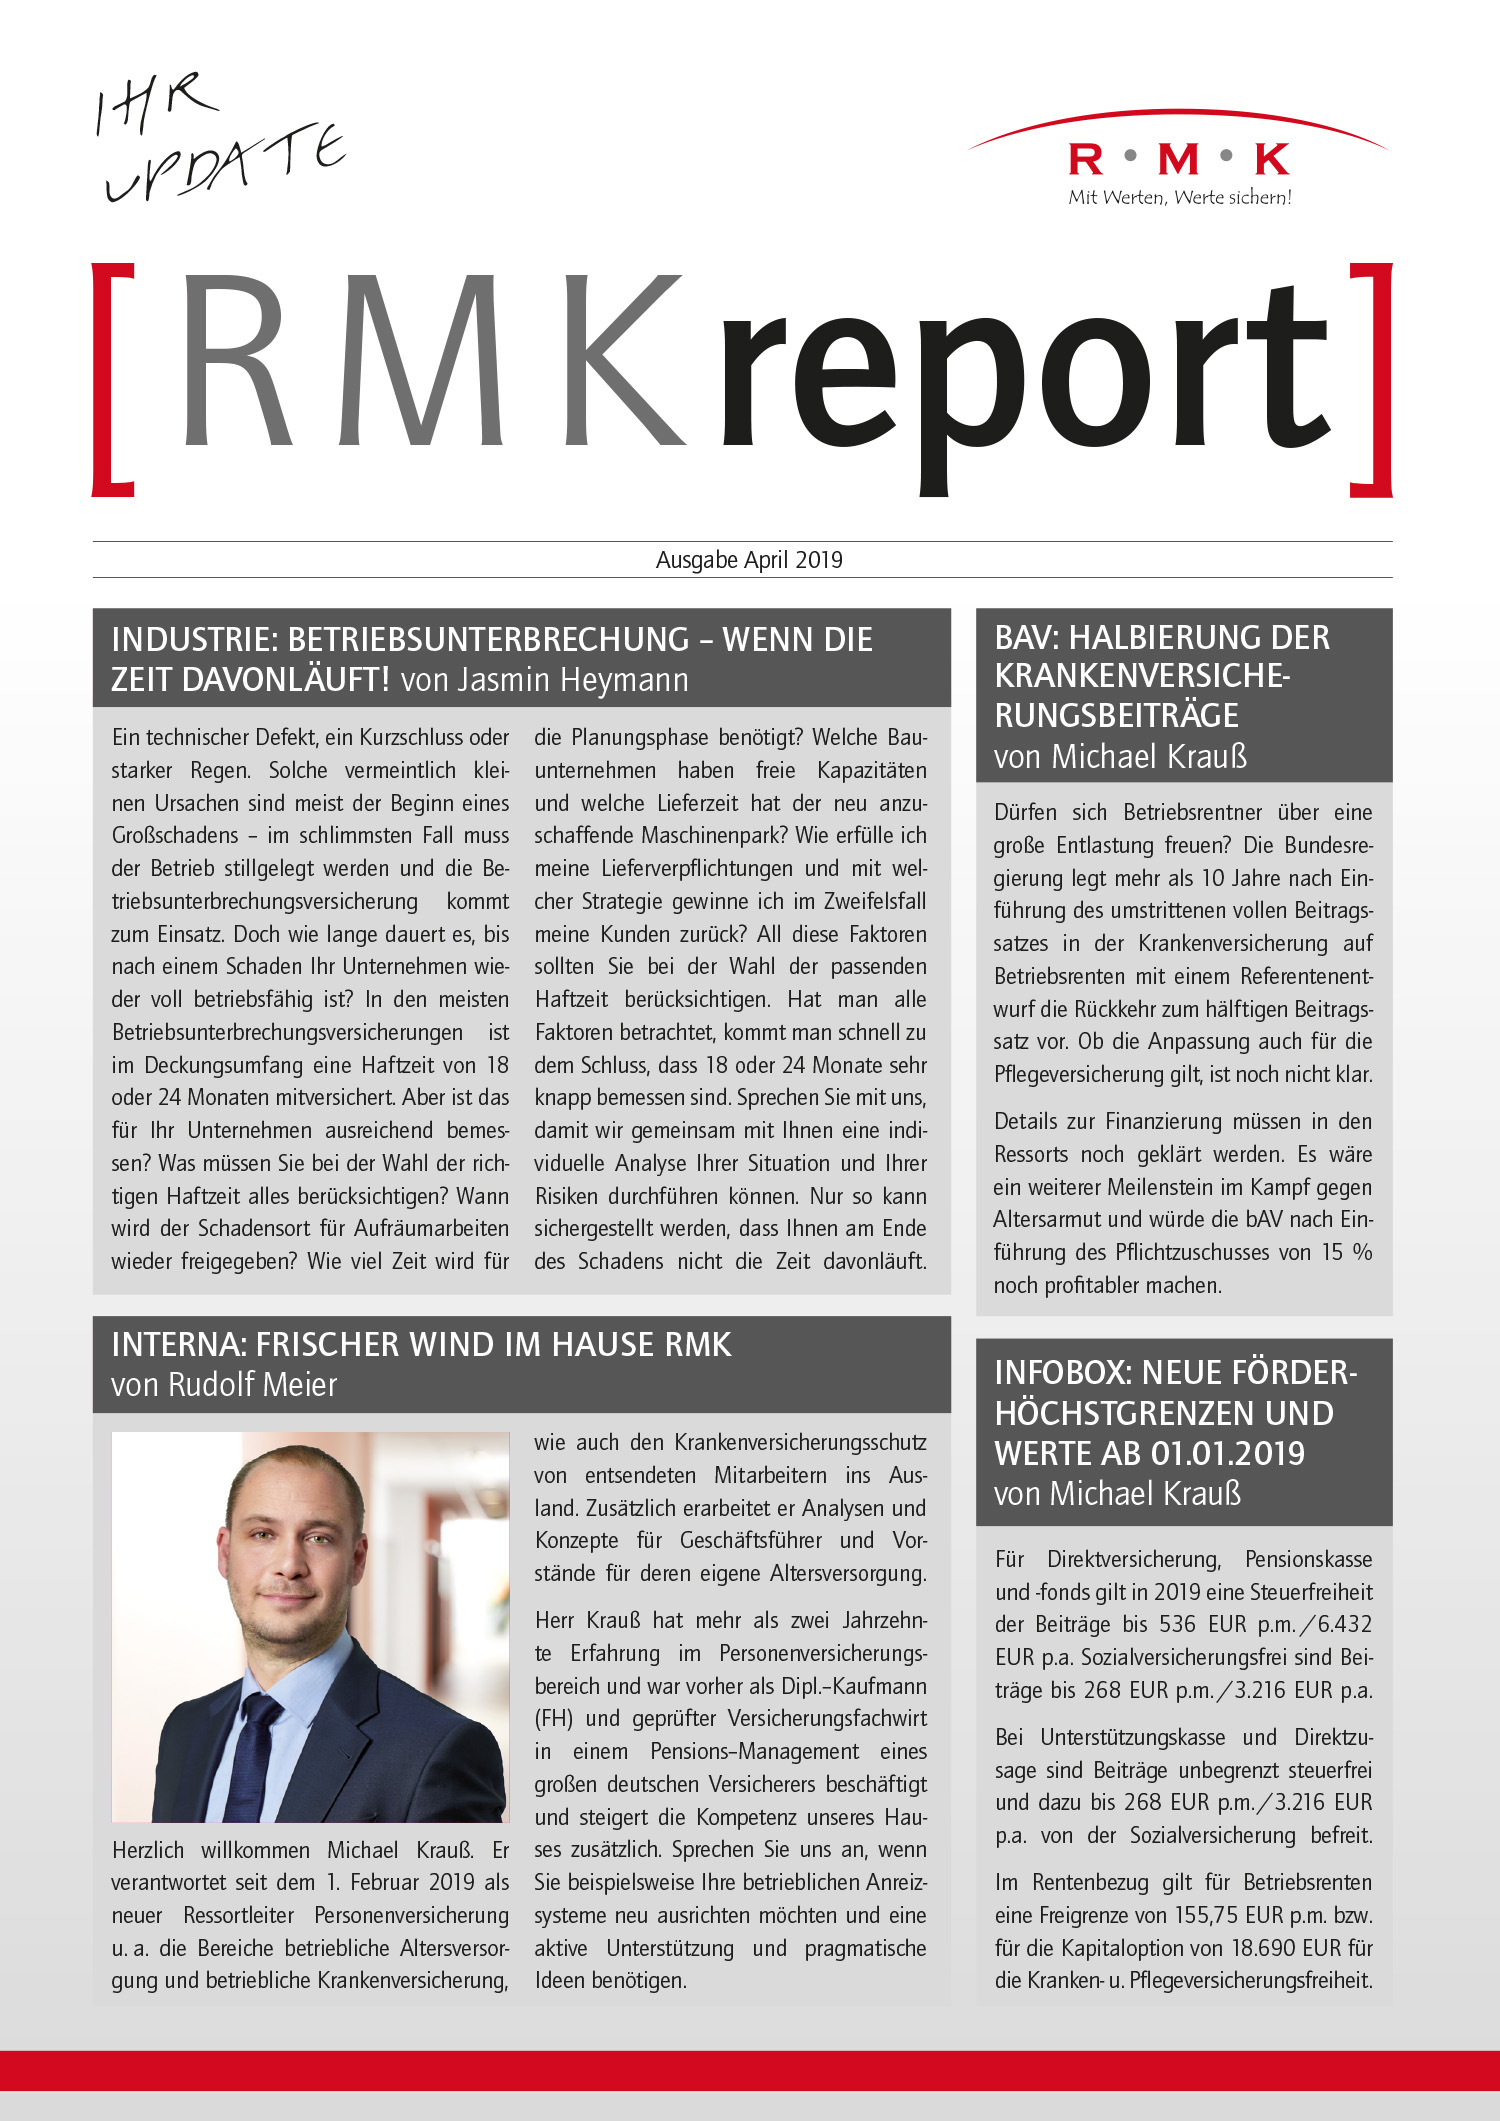 RMK-Report April 2019